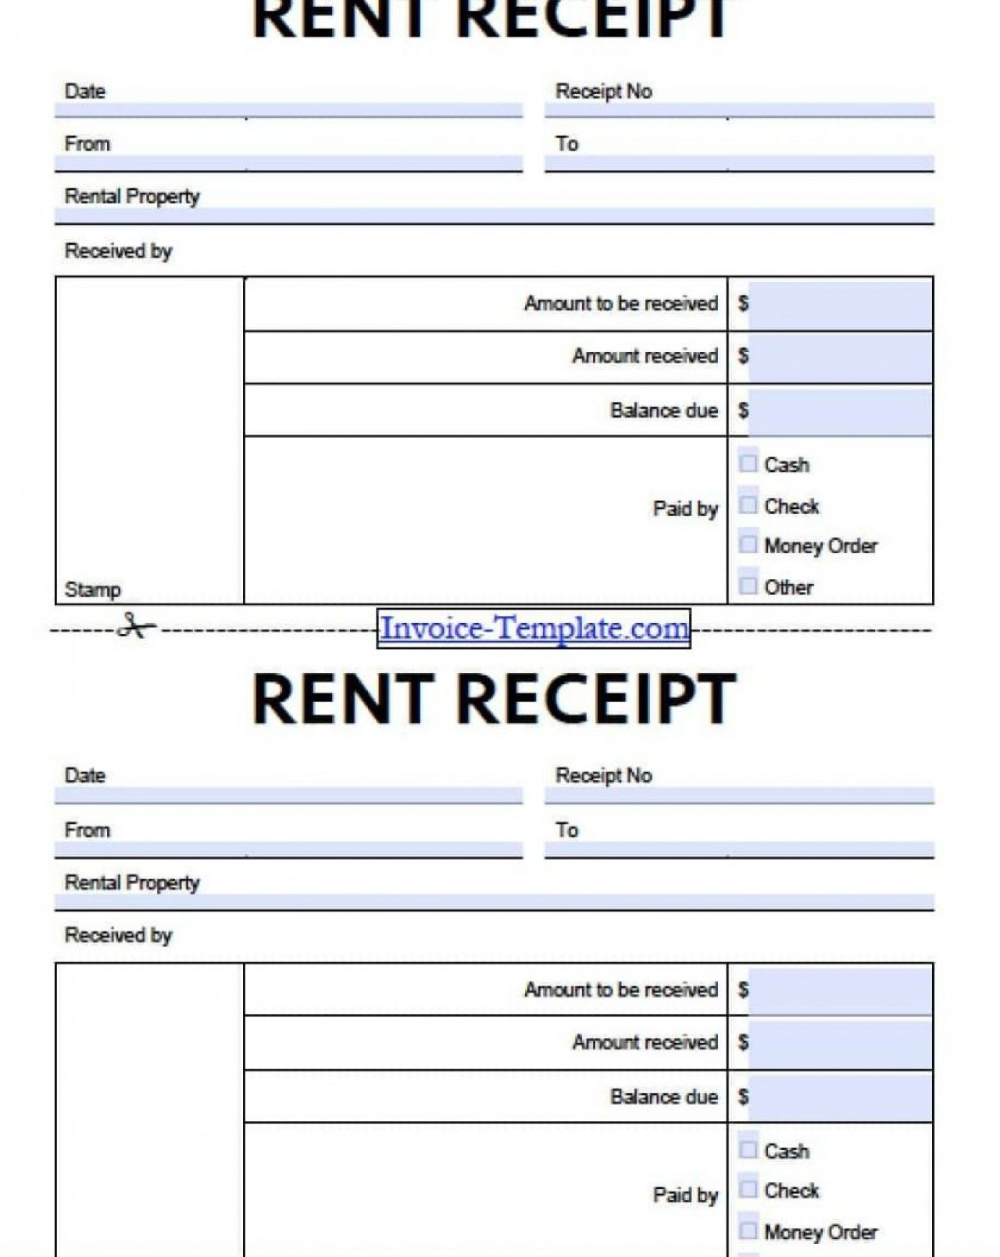 Car Rental Receipt Template Ideas Allwaycarcare Com Hire Word Inside Invoice Template For Rent 10 Pr Being A Landlord Receipt Template Invoice Template Word